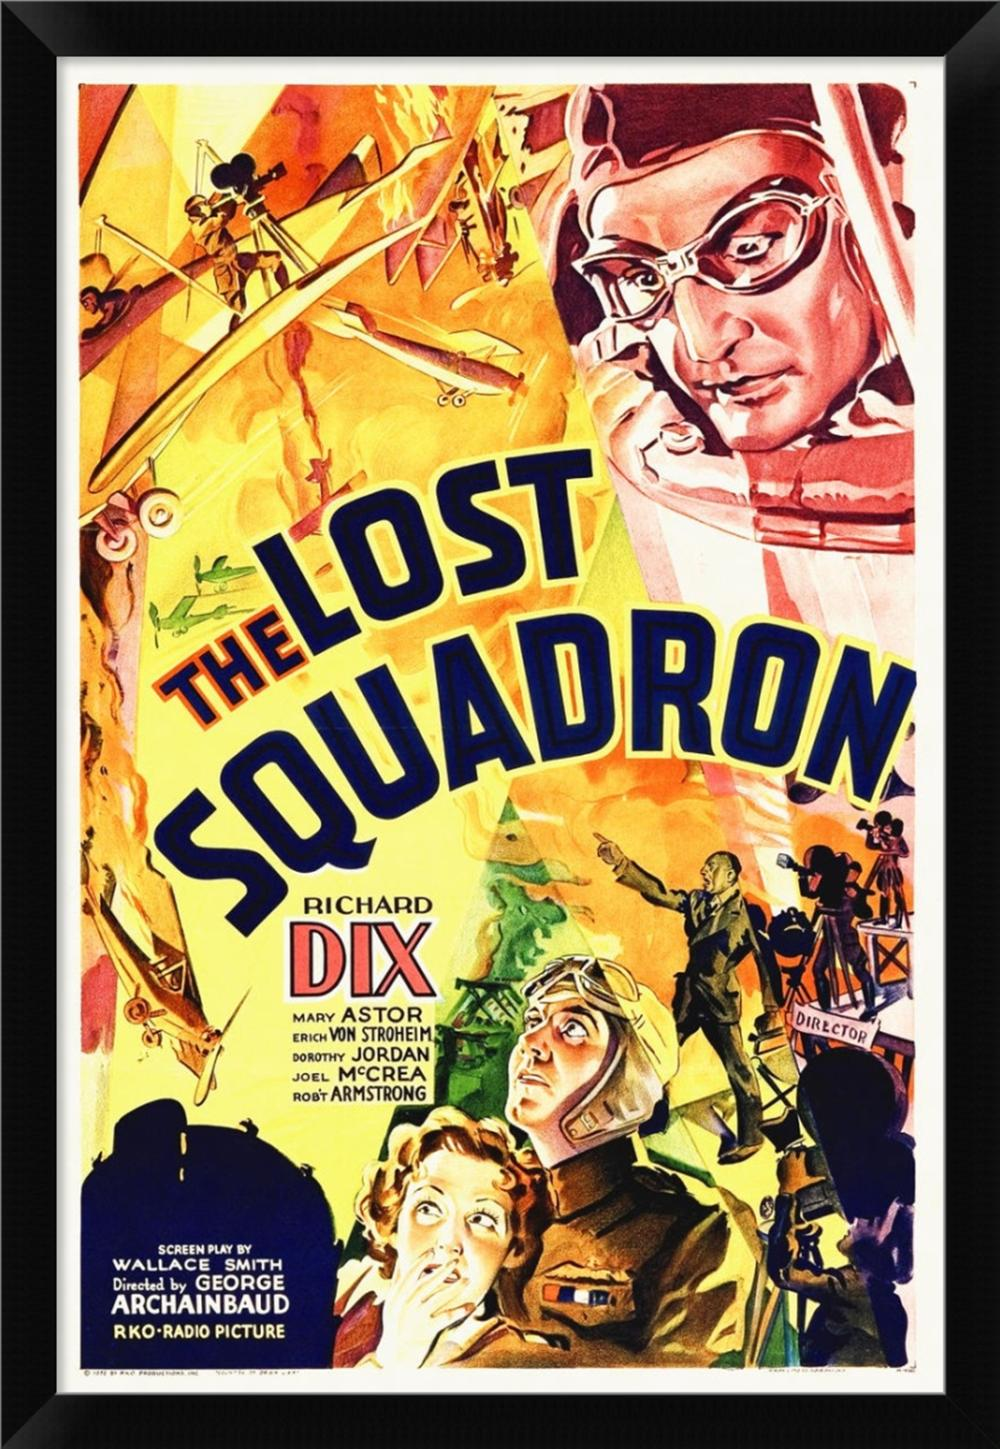 HOLLYWOOD PHOTO ARCHIVE - THE LOST SQUADRON